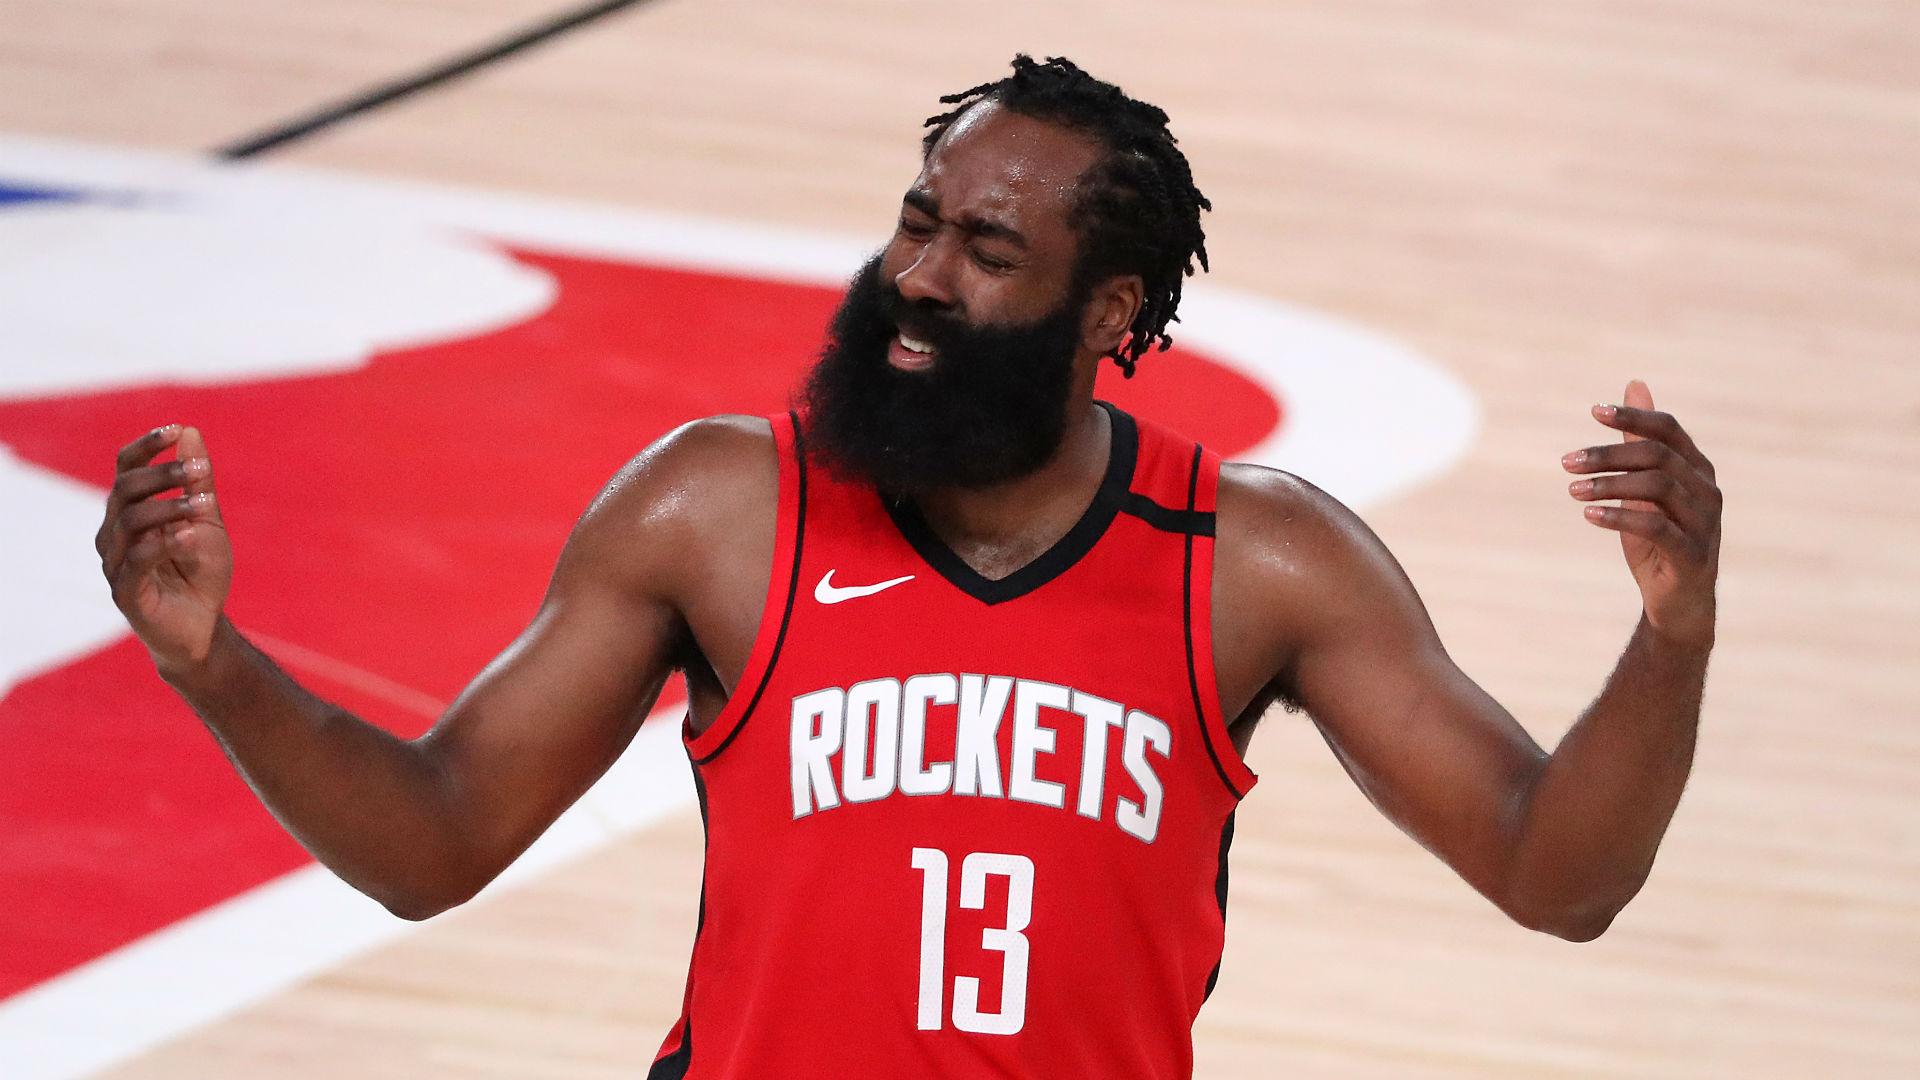 James Harden says he did everything he could for the Rockets. He's wrong.